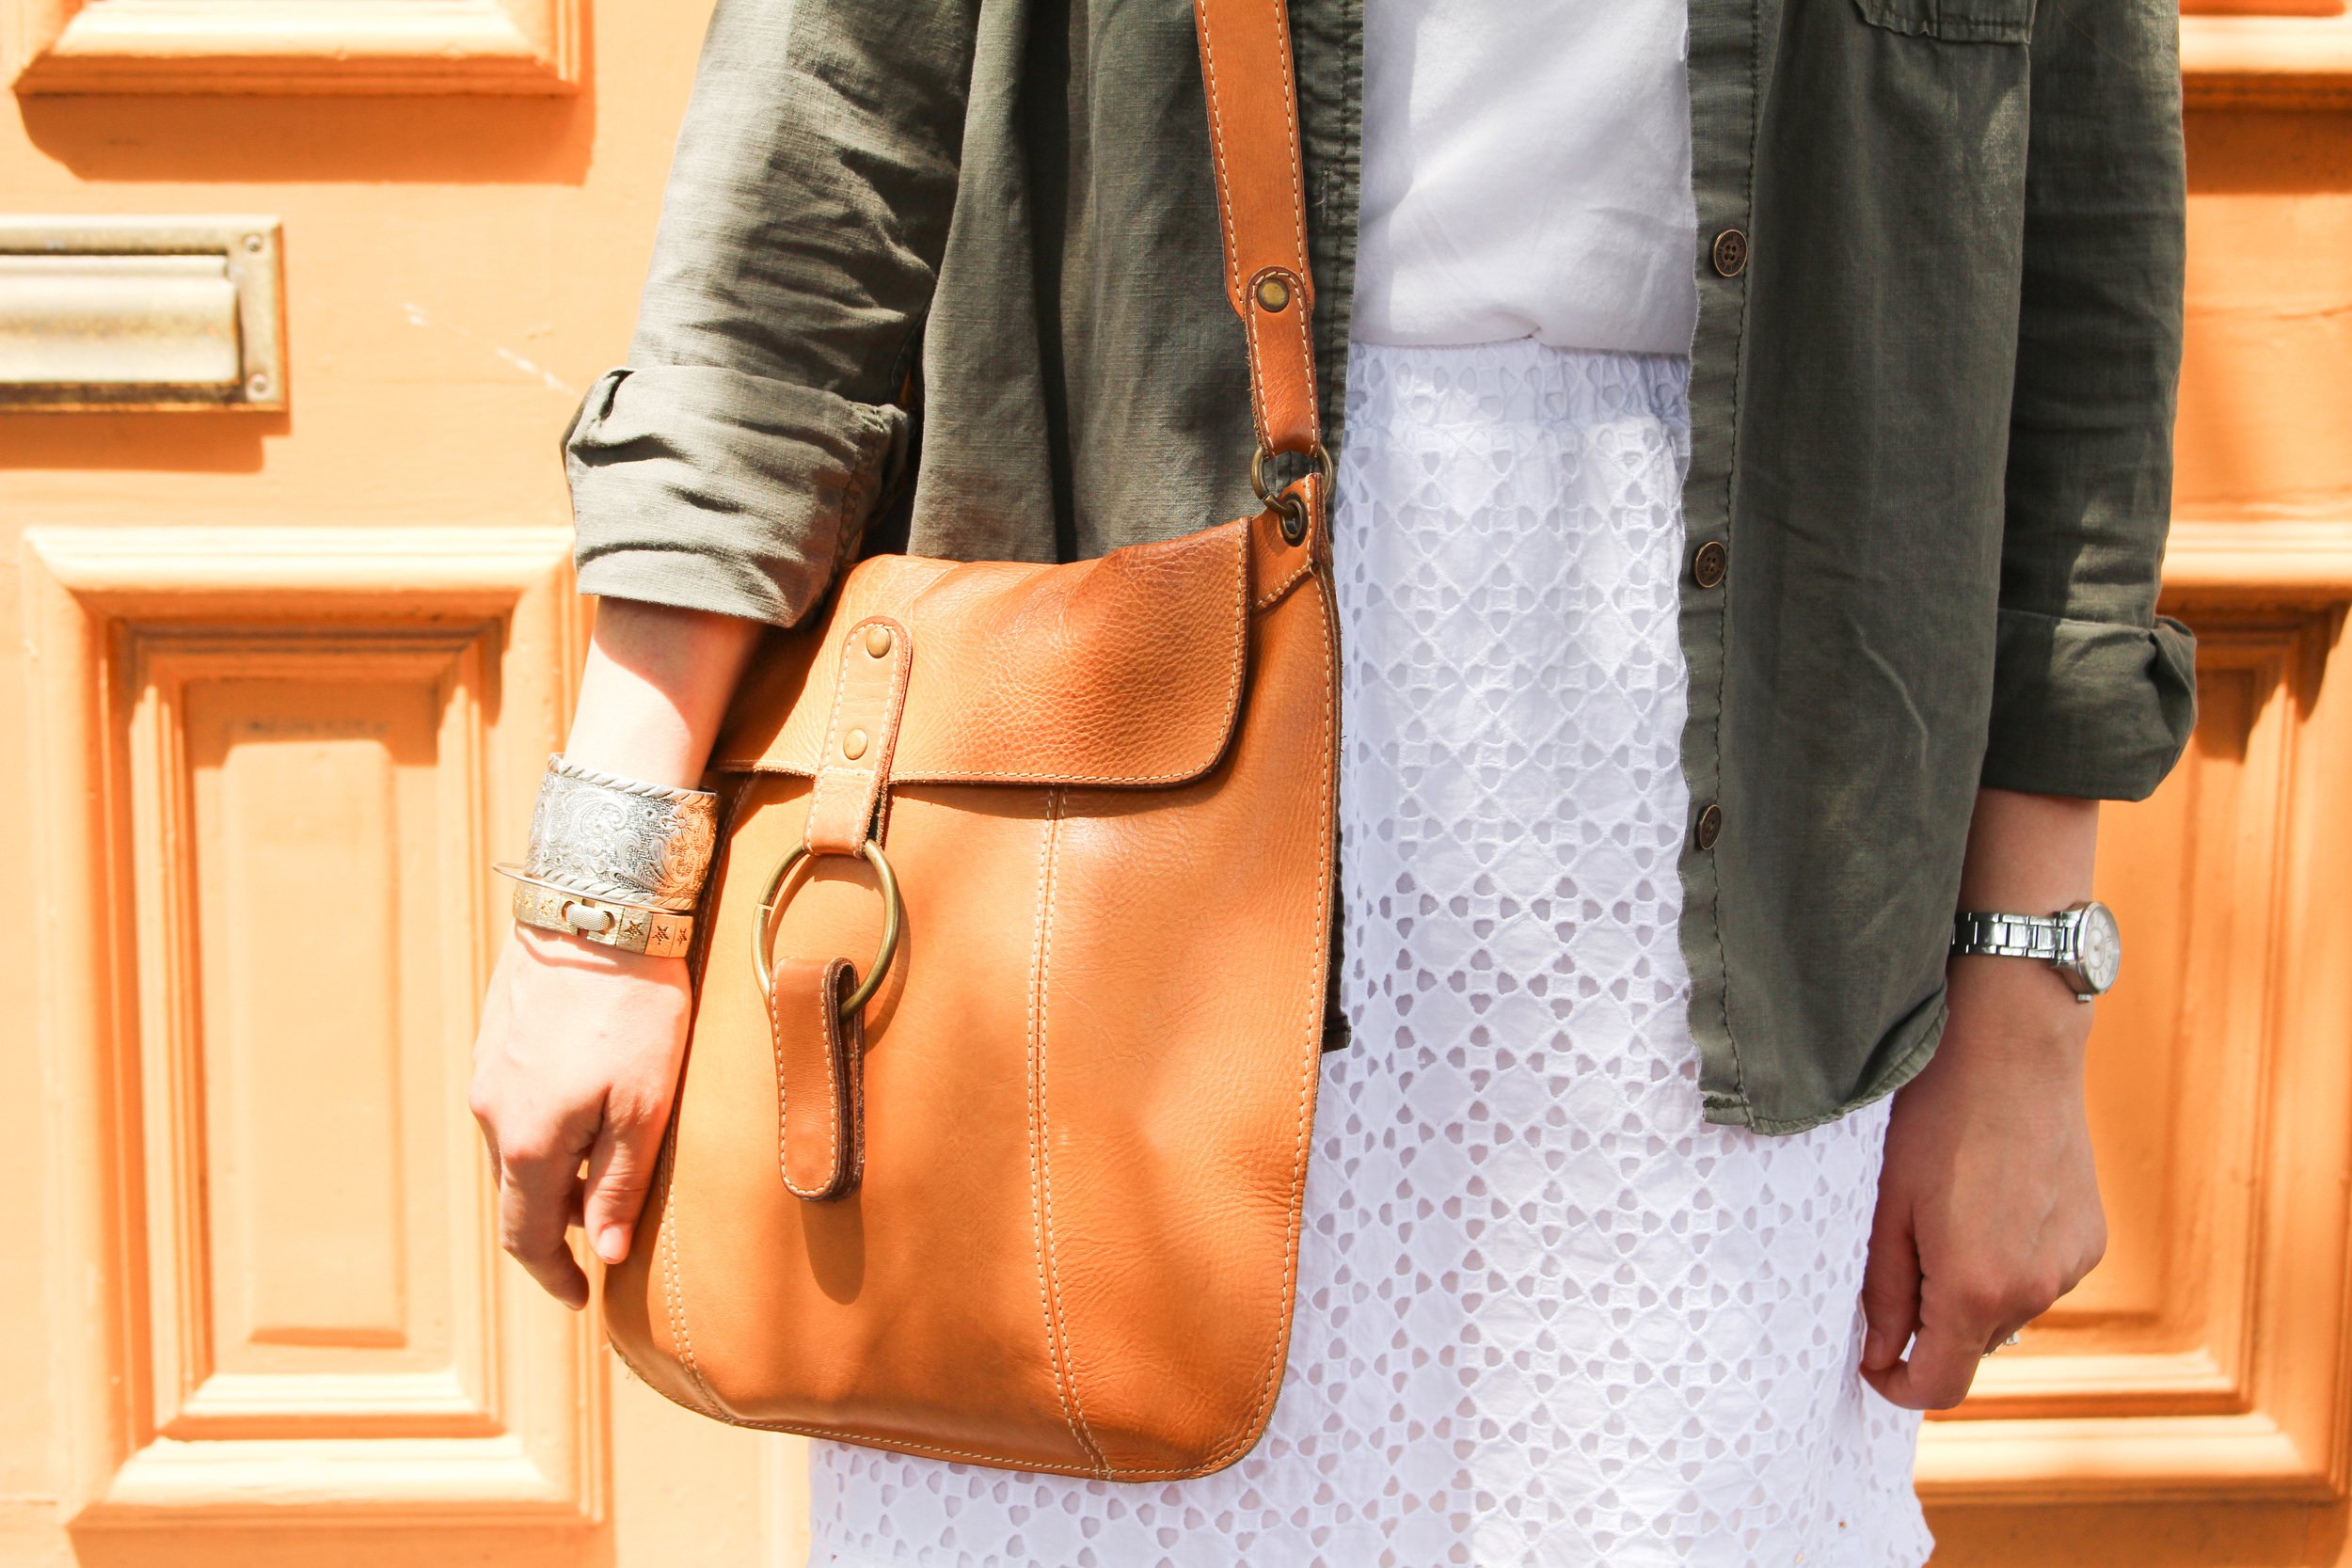 eyelet skirt, leather satchel, silver cuff, details, summer style